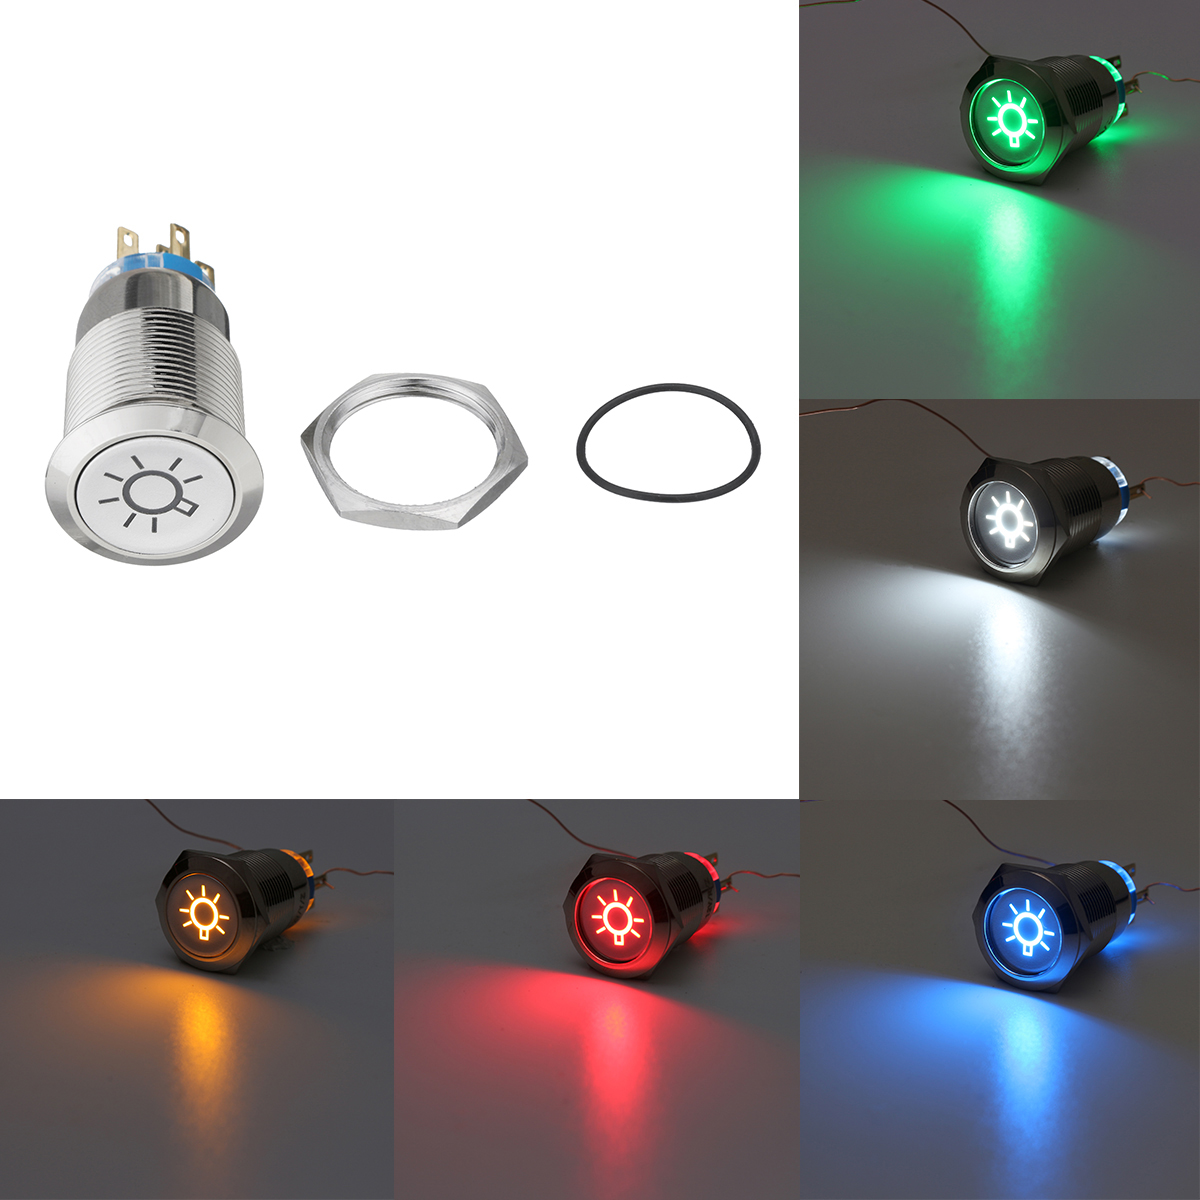 19mm 12V LED IP65 Push Button On Off Dome Light Switch